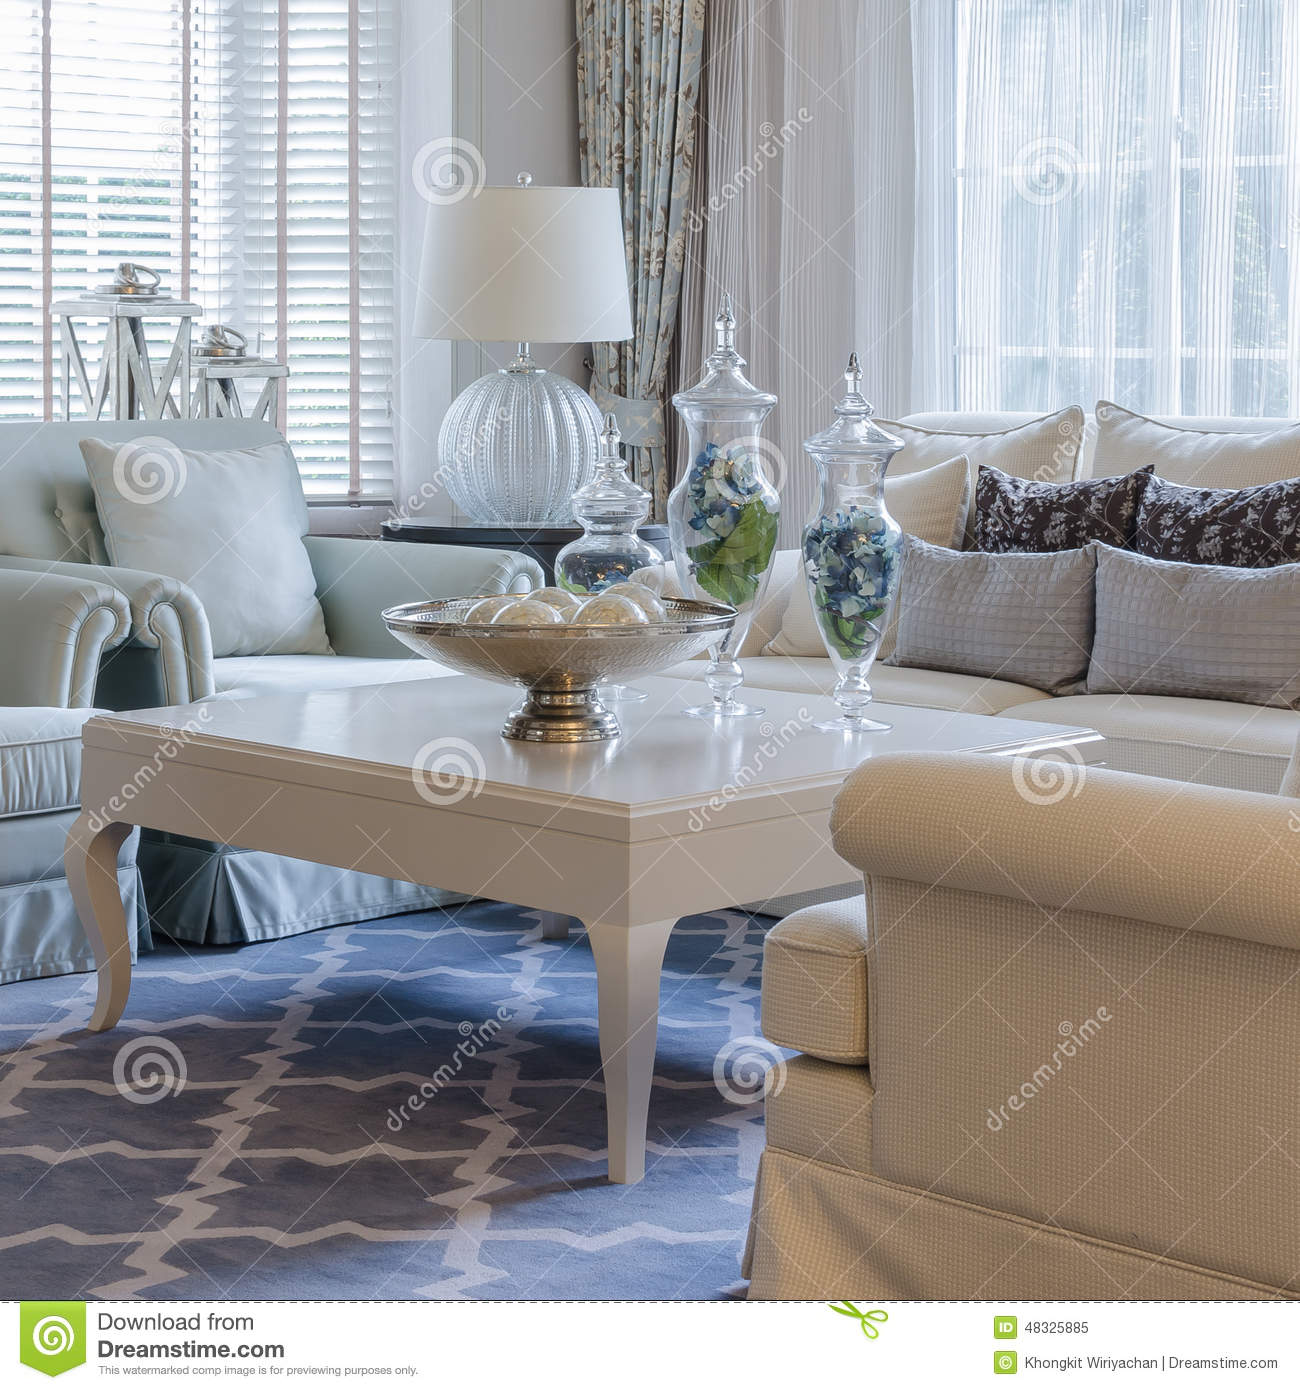 Luxury Classic Living Rooms: Luxury Living Room With Classic Sofa And Table Stock Image